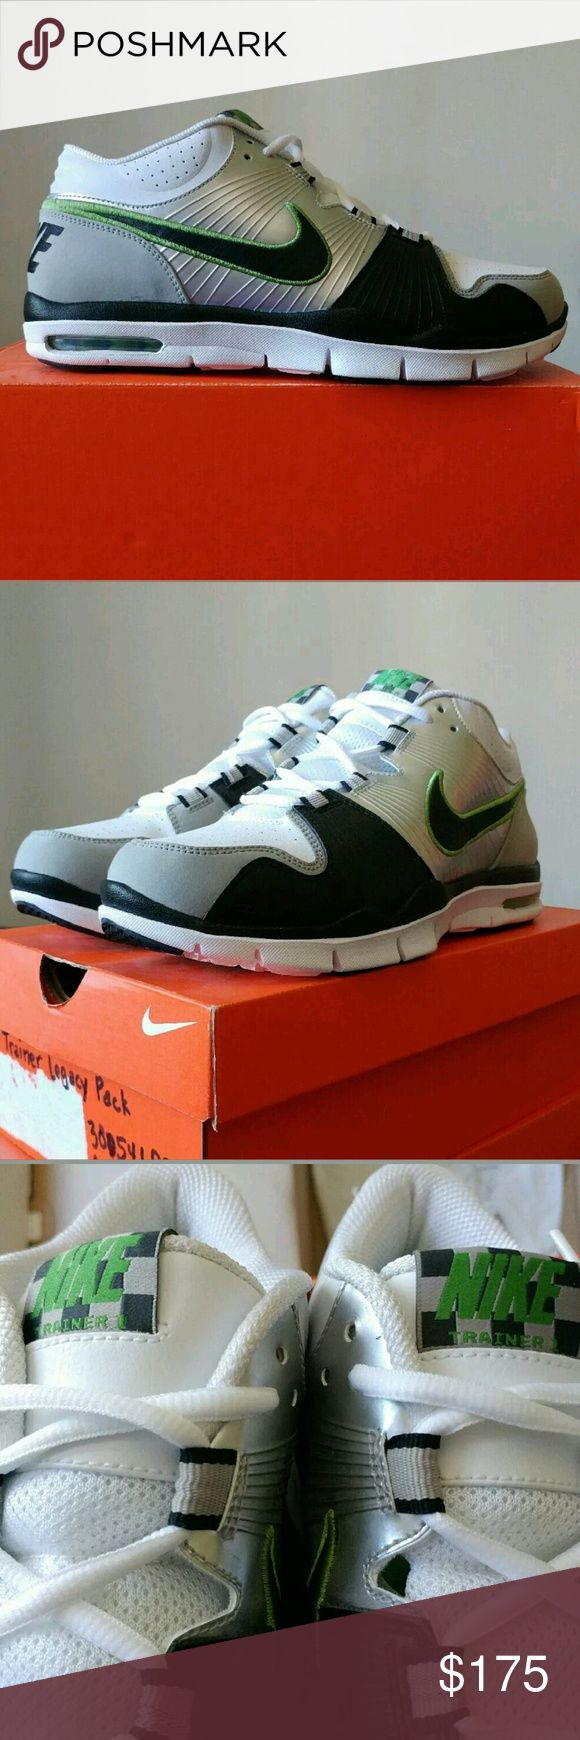 2009 air trainer 1 ltd legacy chlorophyll 10/10 ds condition. Replacement box. Open to trades.  Will work through 🅿🅿 direct. Nike Shoes Sneakers